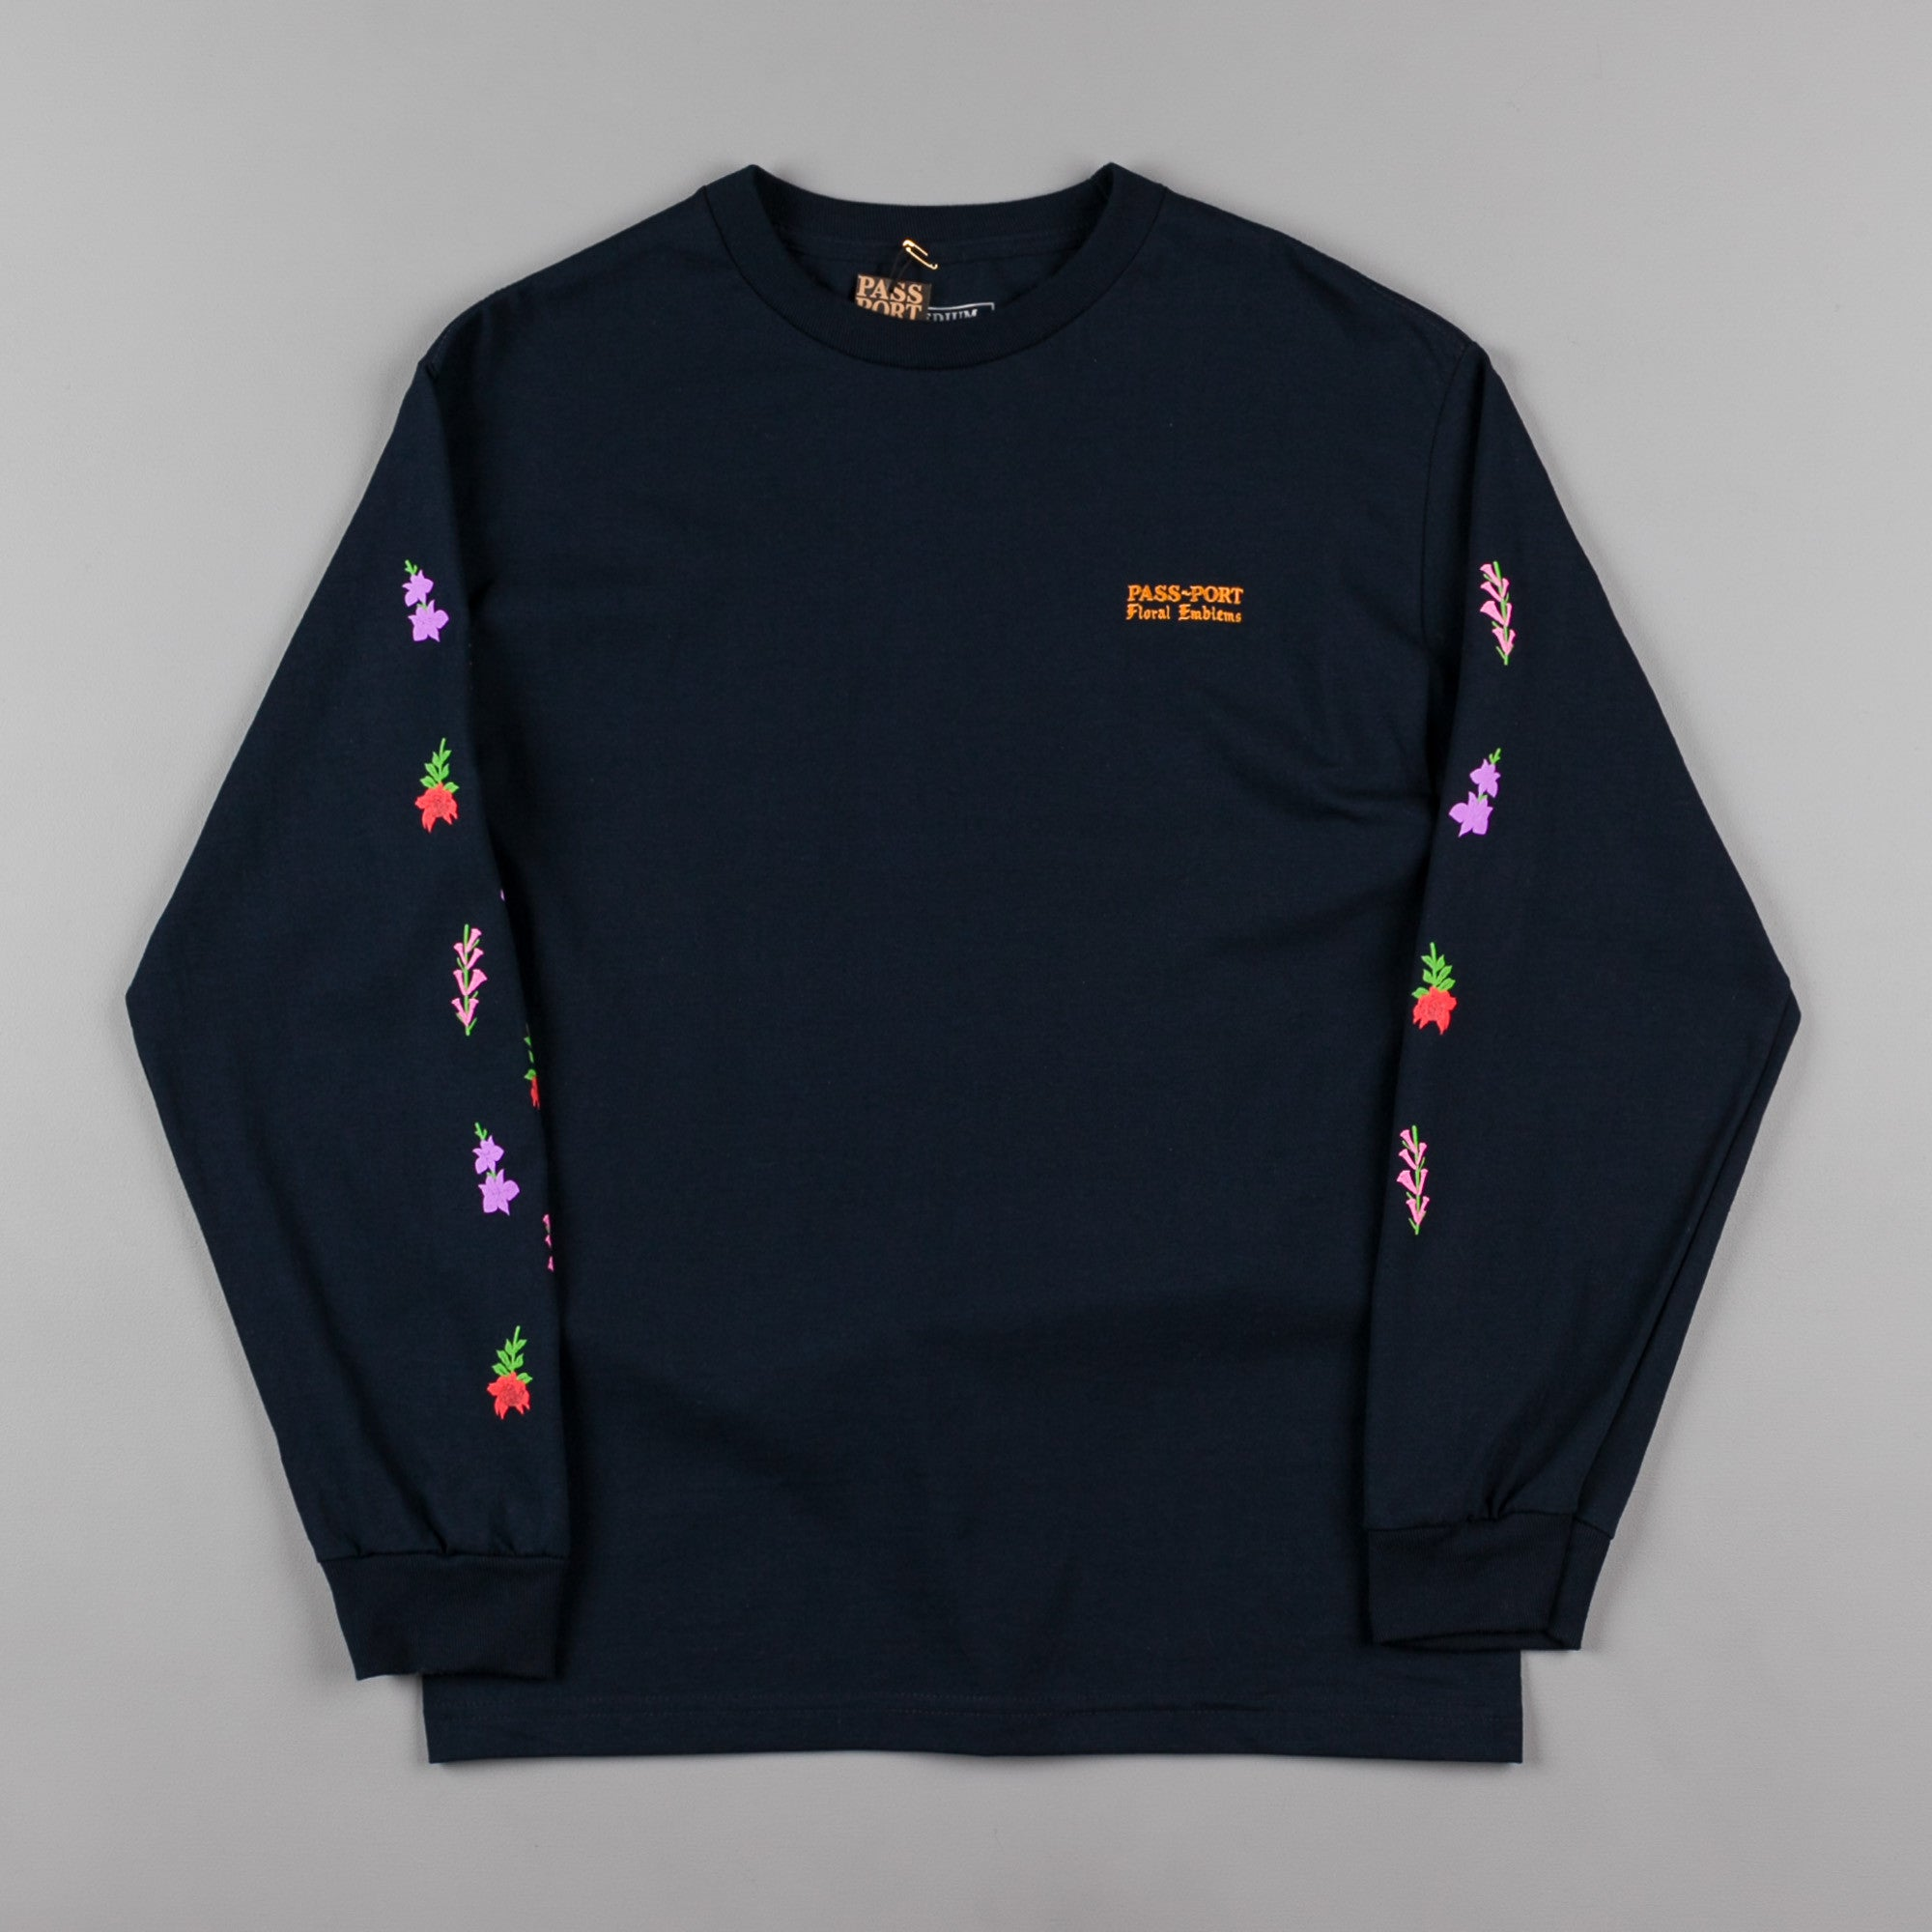 Pass Port Floral Emblems Long Sleeve T-Shirt - Navy